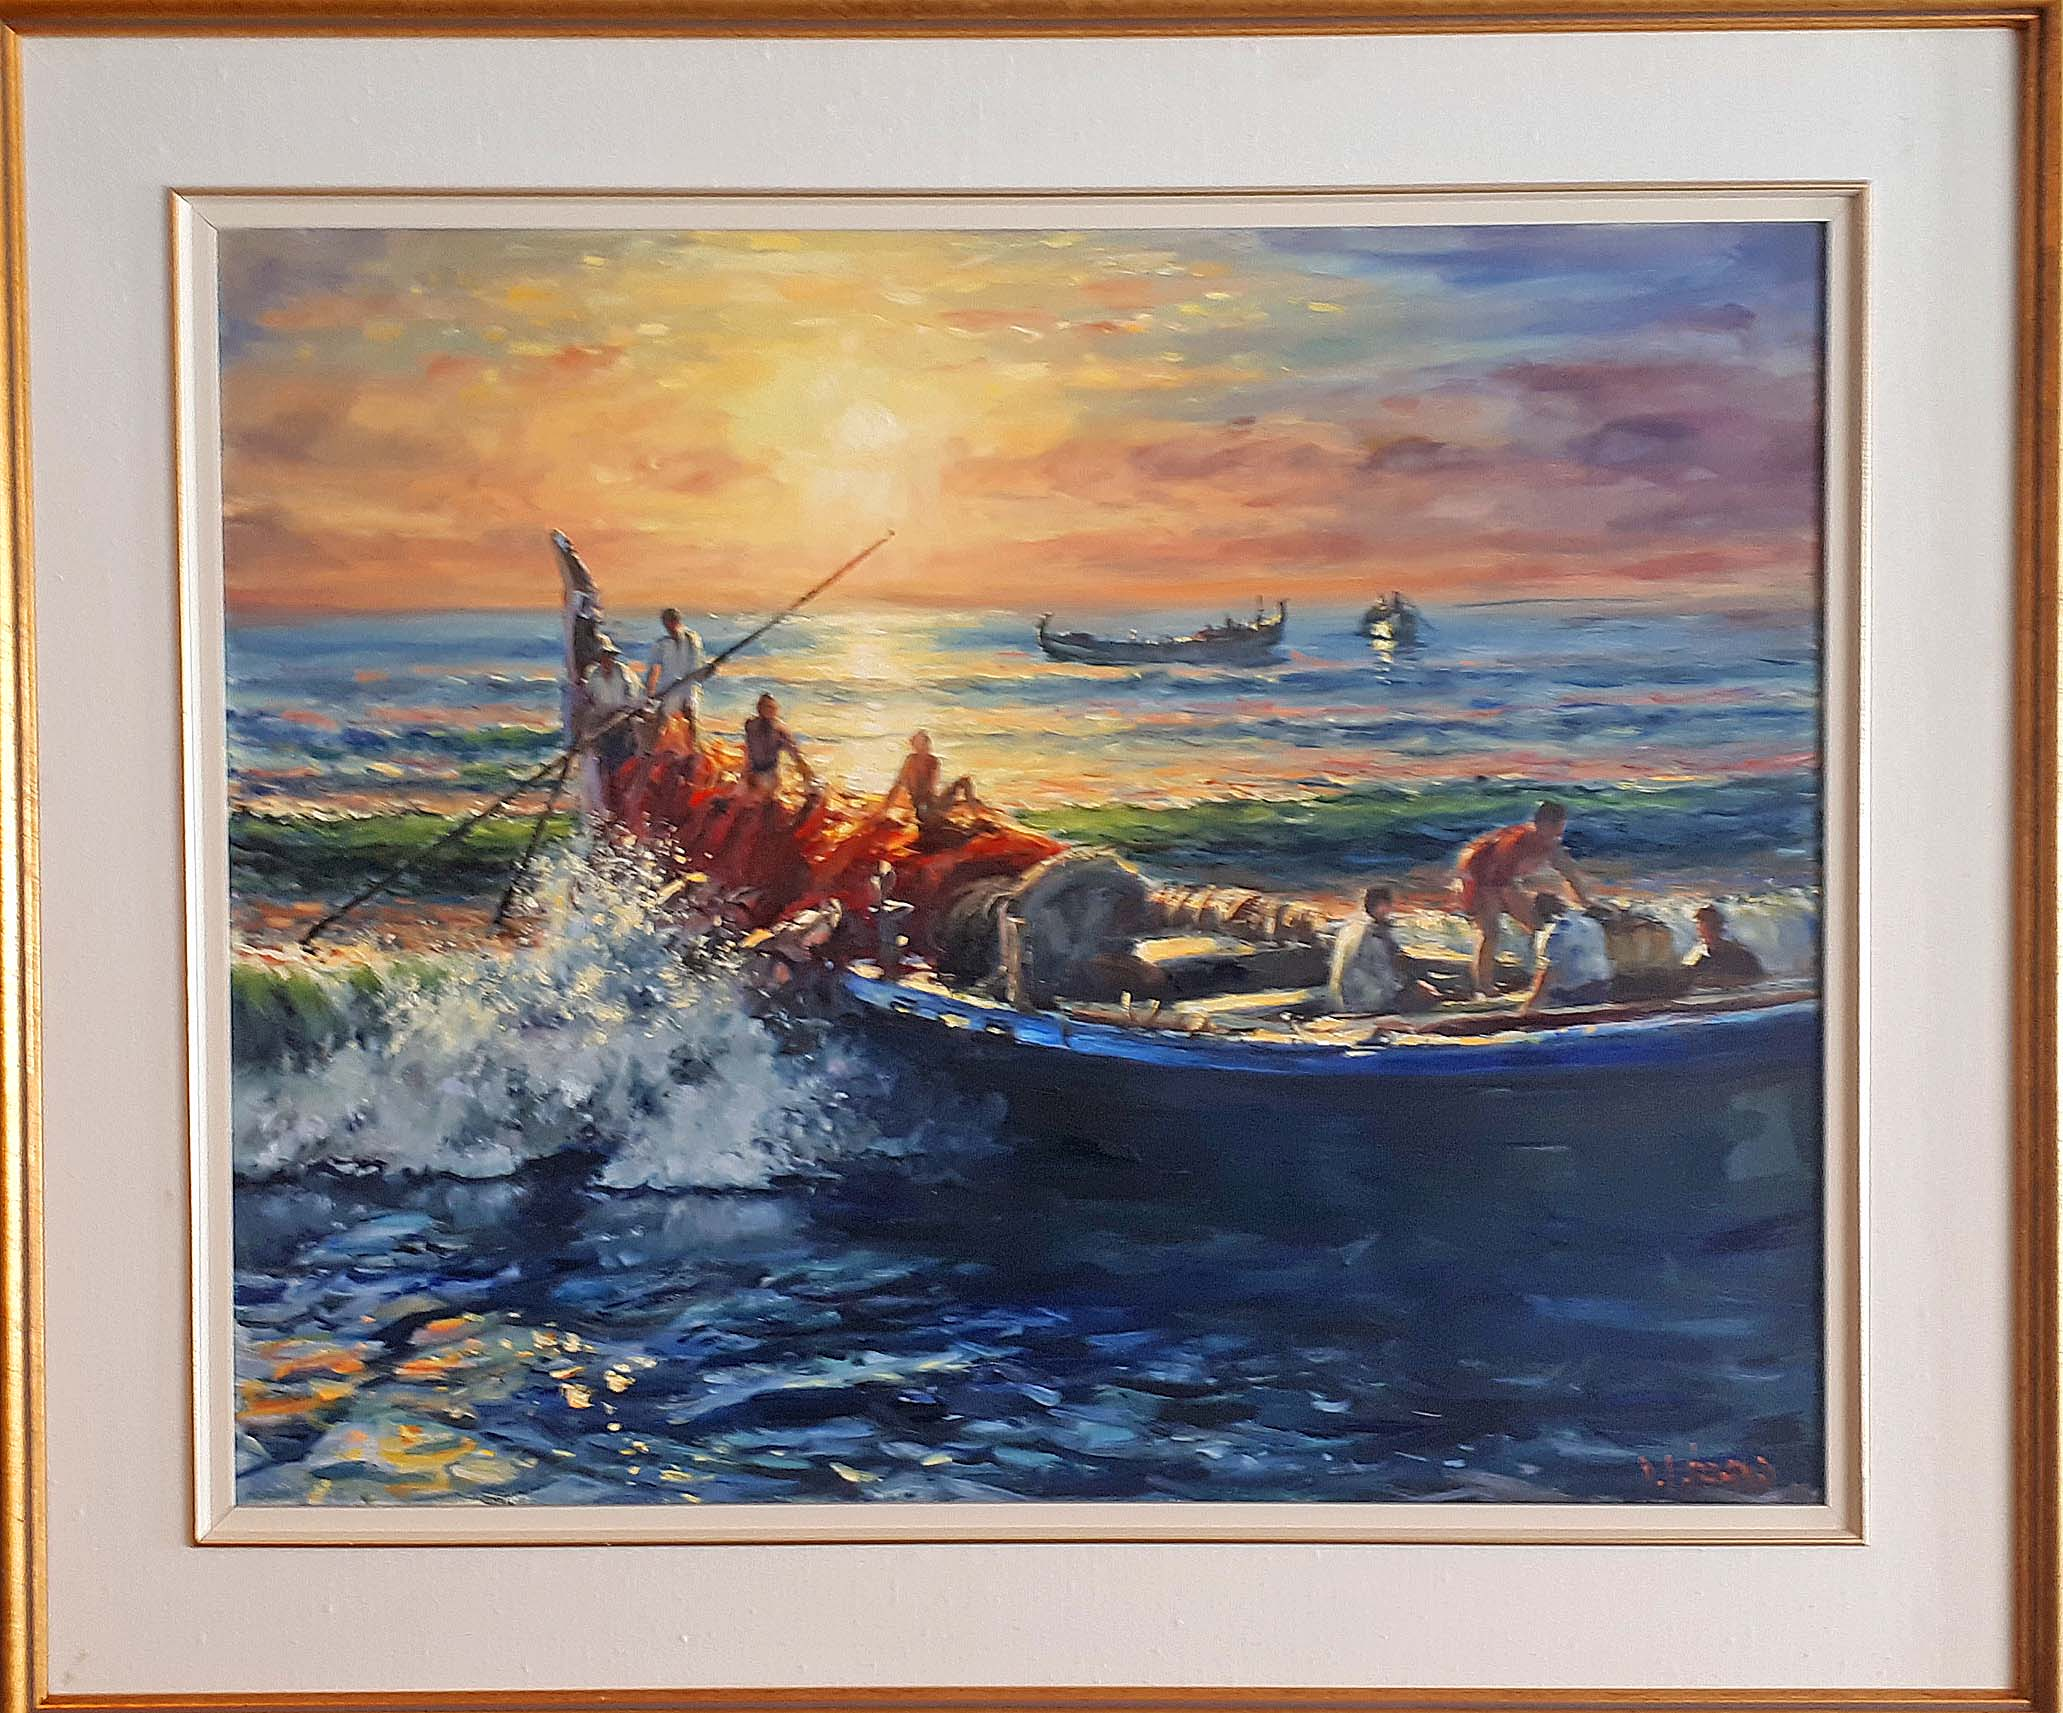 "Daniel Izzard, Canadian, Oil on Canvas, ""Bringing in the Catch"", 2001, Est. Value: 6,000, Price: 1,350"